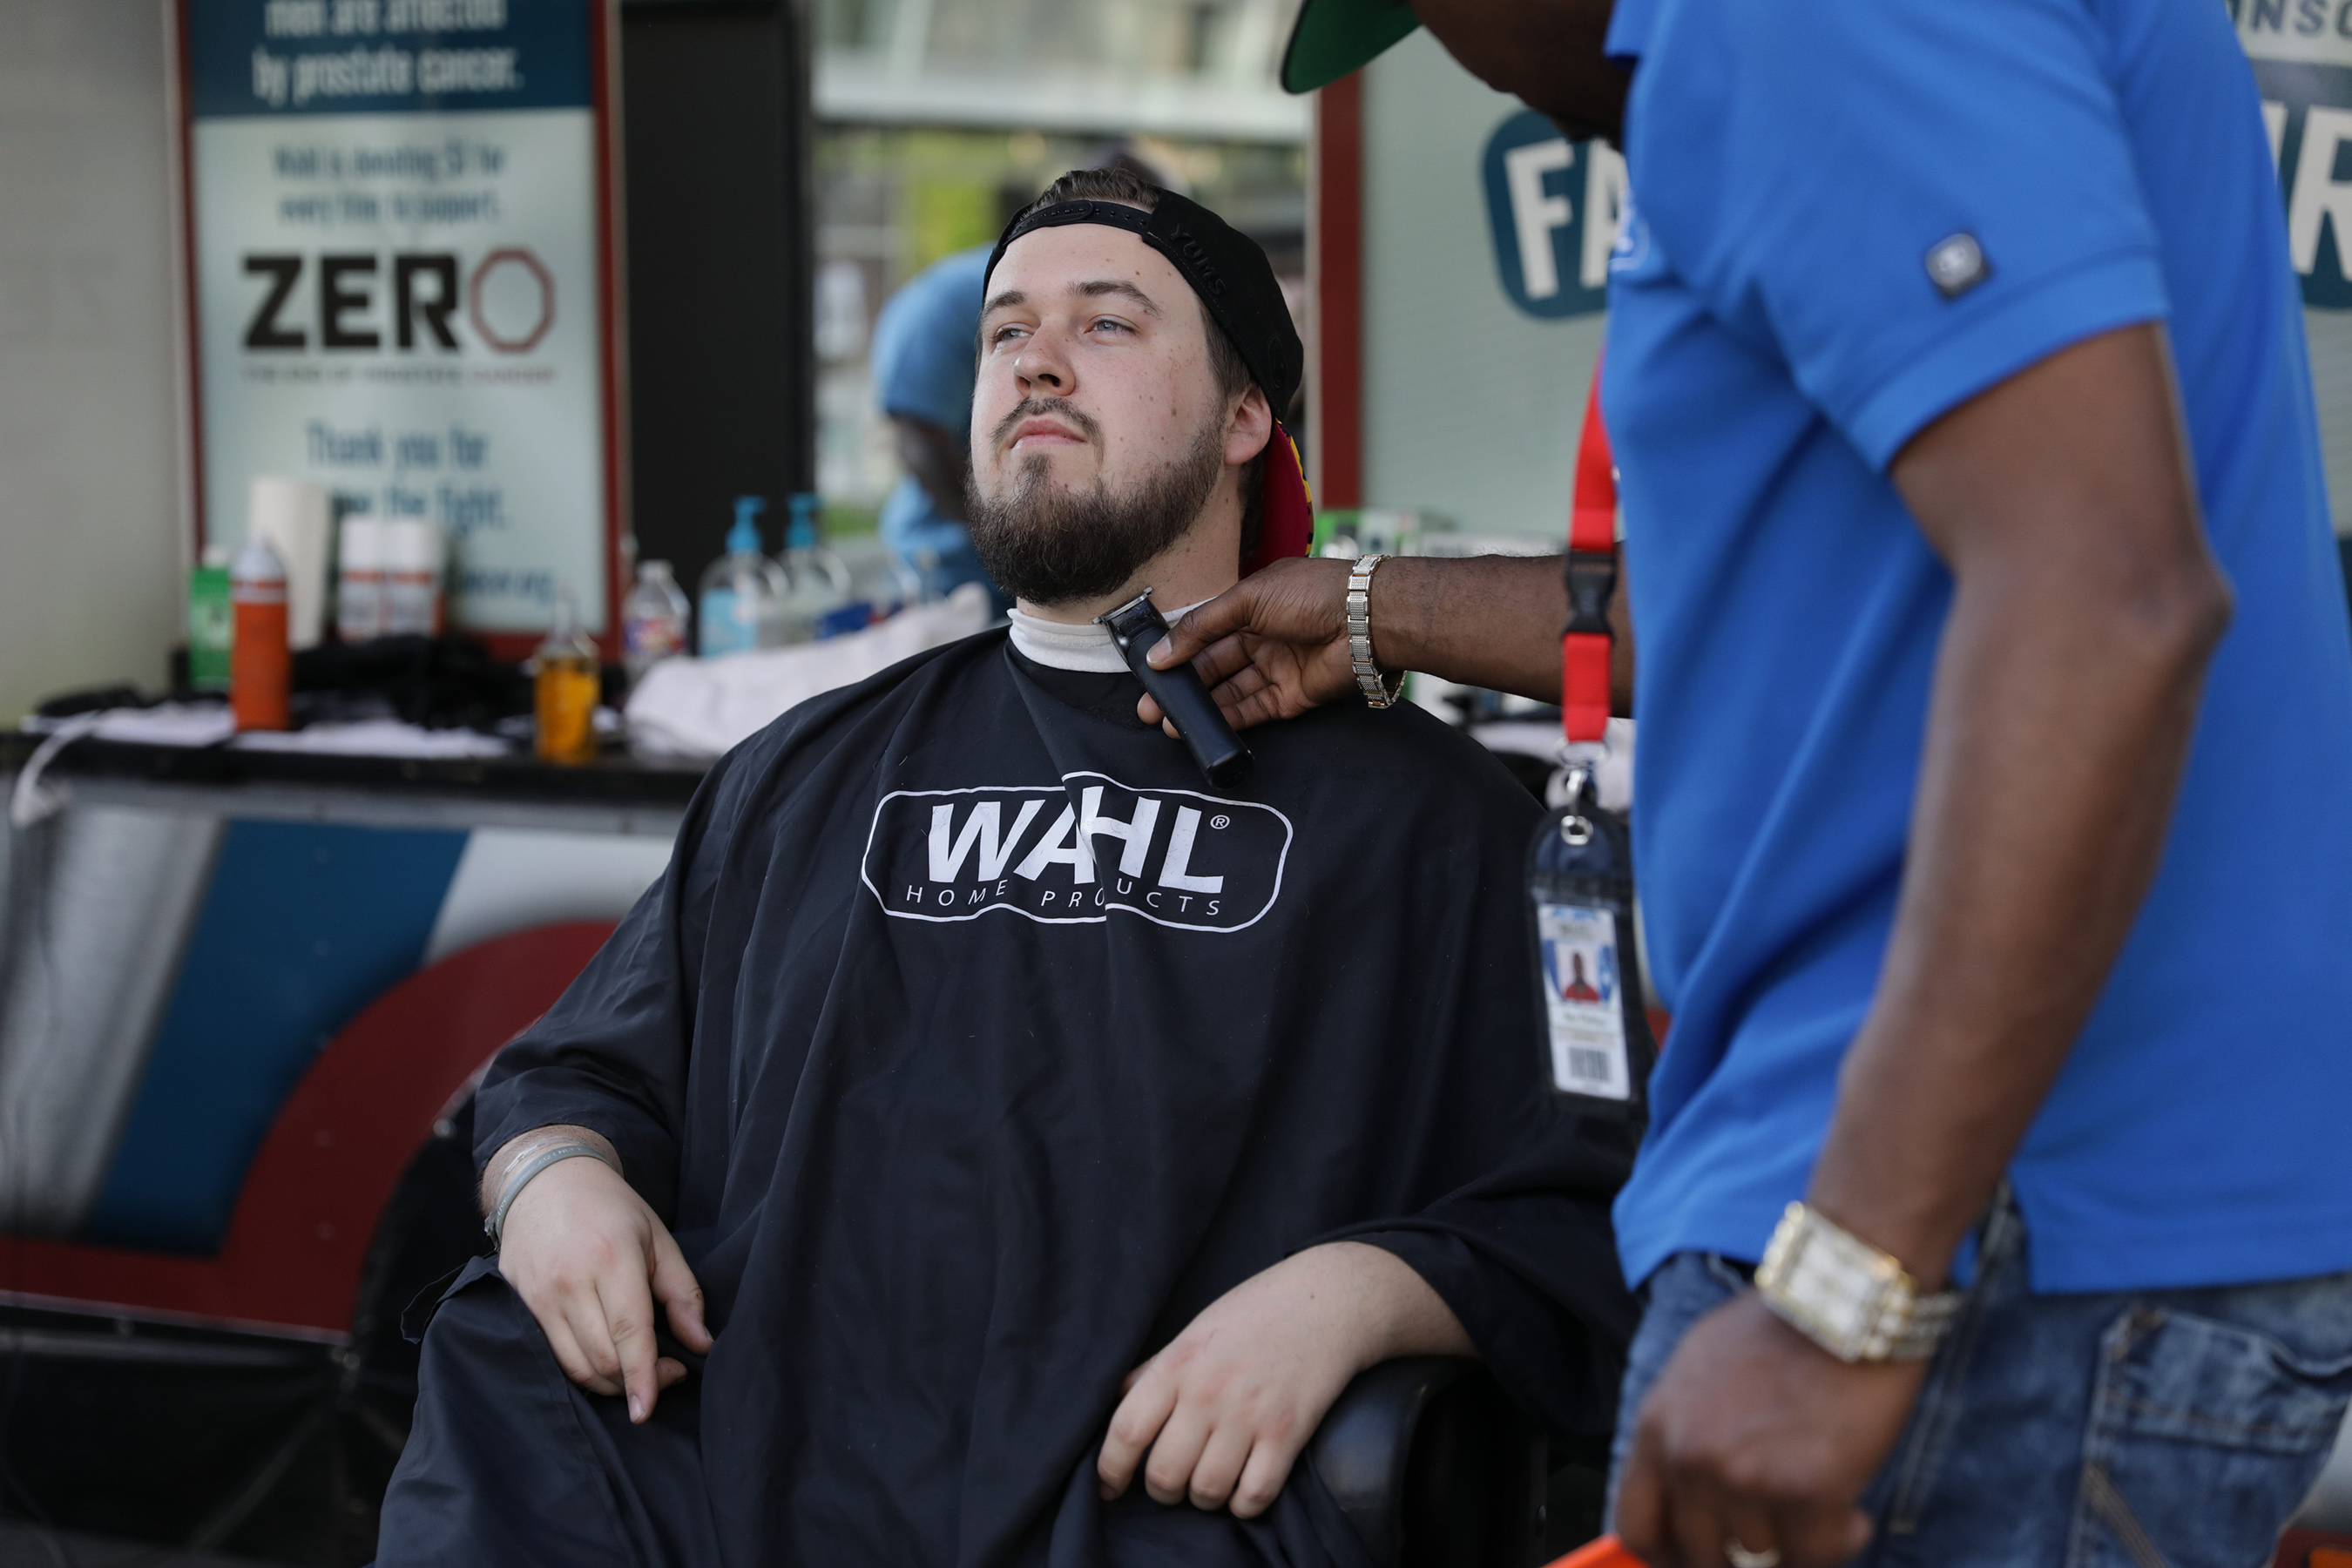 At each tour stop a team of master barbers will be offering whiskered citizens FREE facial hair trims to help fight prostate cancer.